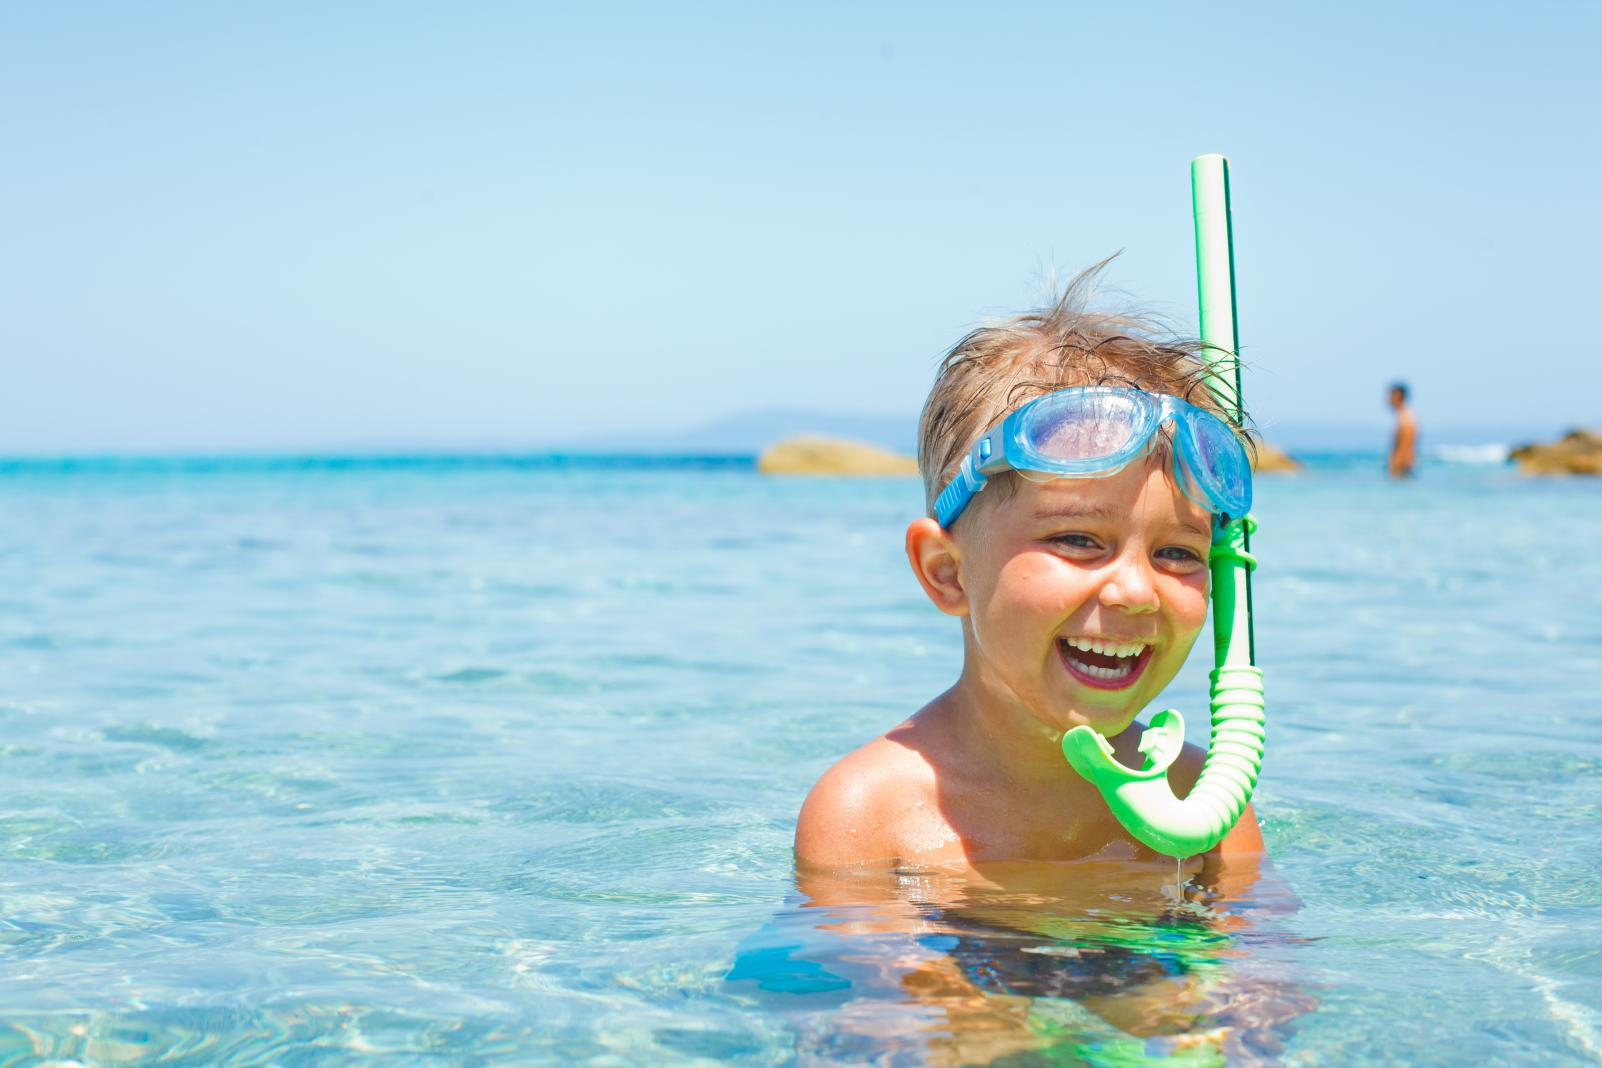 snorkeling activity KidsLoveGreece.com